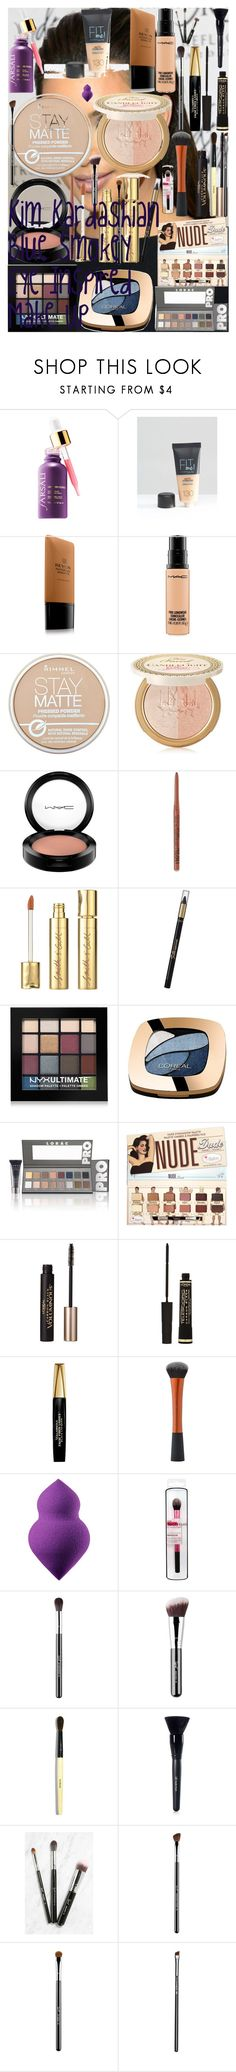 Kim Kardashian Blue Smokey Eye Inspired Make Up by oroartye-1 on Polyvore featuring beauty, LORAC, Bobbi Brown Cosmetics, Too Faced Cosmetics, Revlon, Sigma, MAC Cosmetics, NYX, Maybelline and Sephora Collection